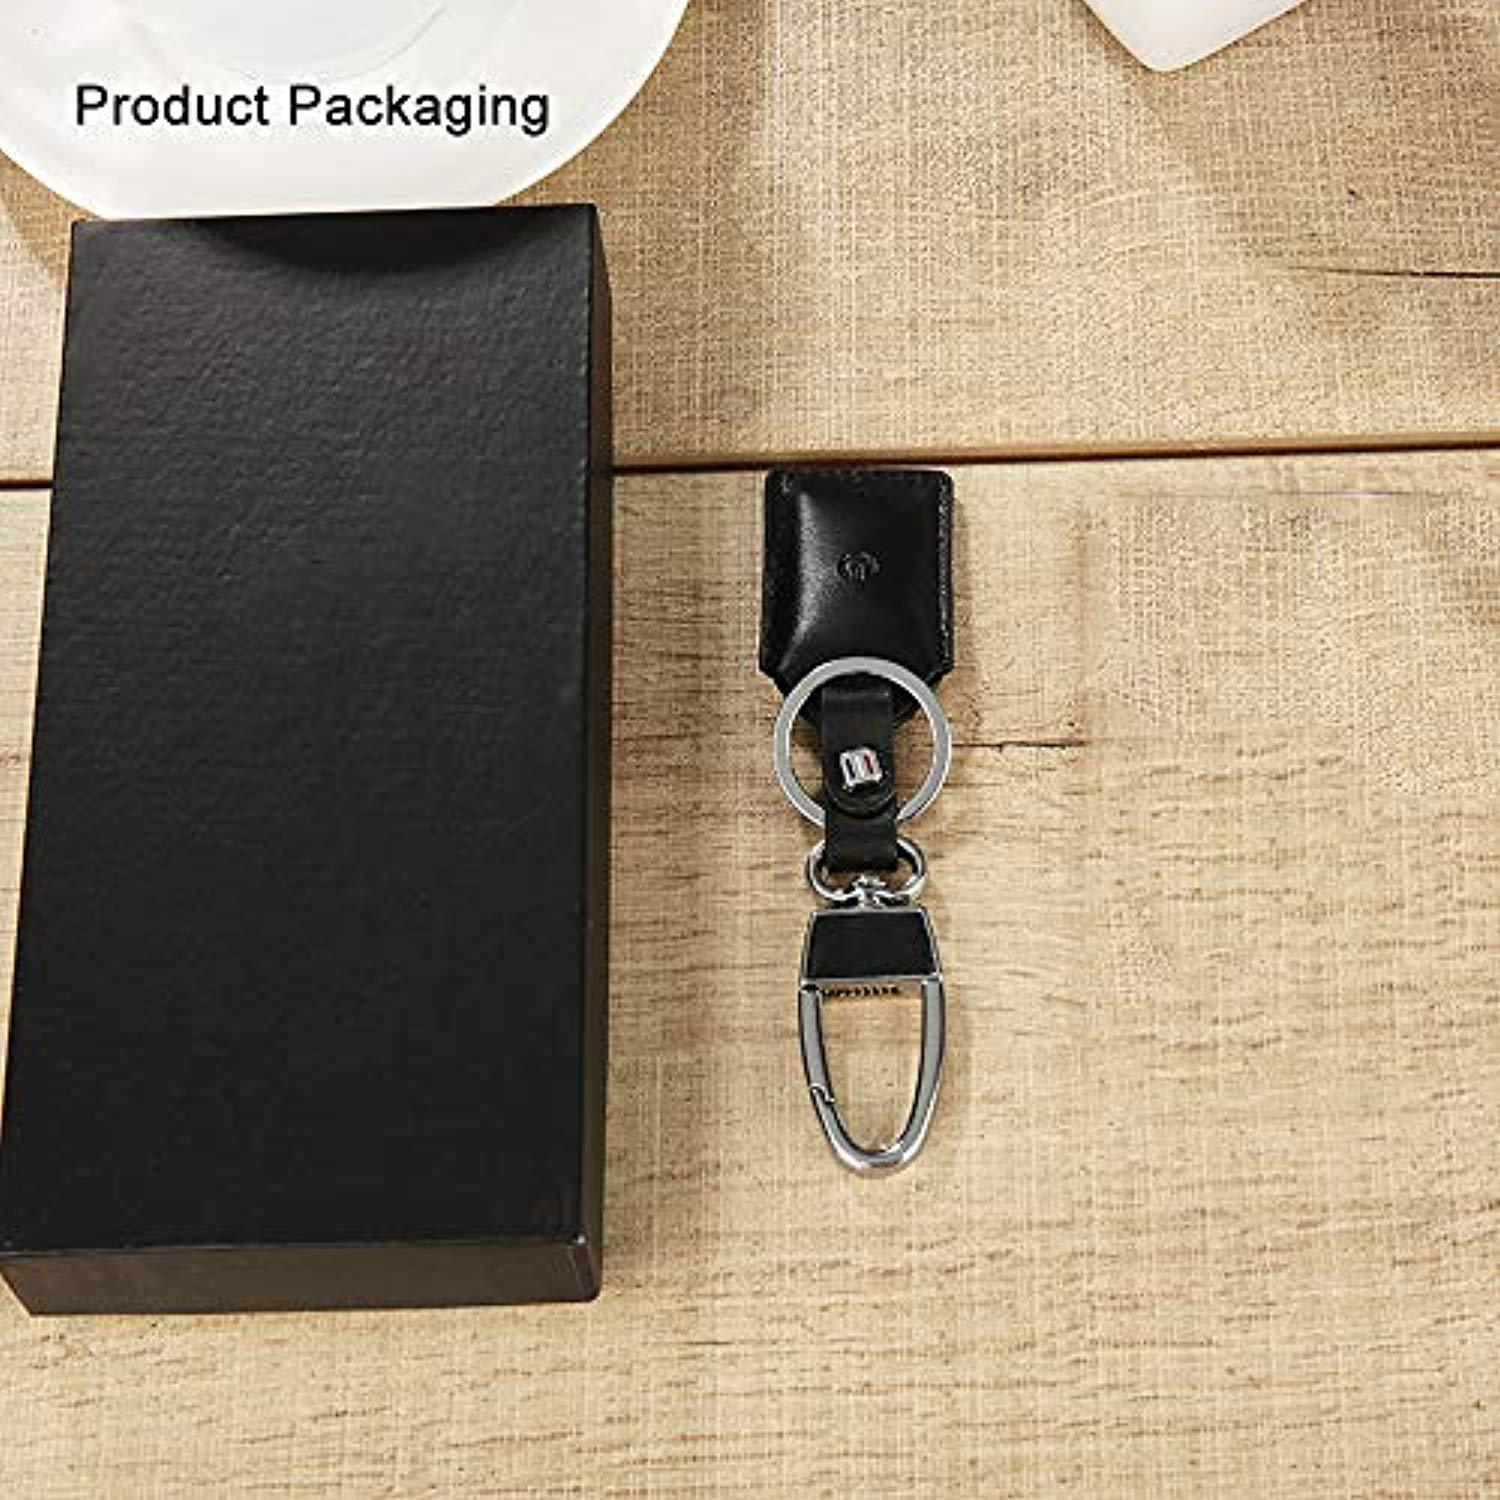 Lmfens--Multifunctional Leather Keychain Intelligent Anti-Lost Alarm, Smart Lost Positioning